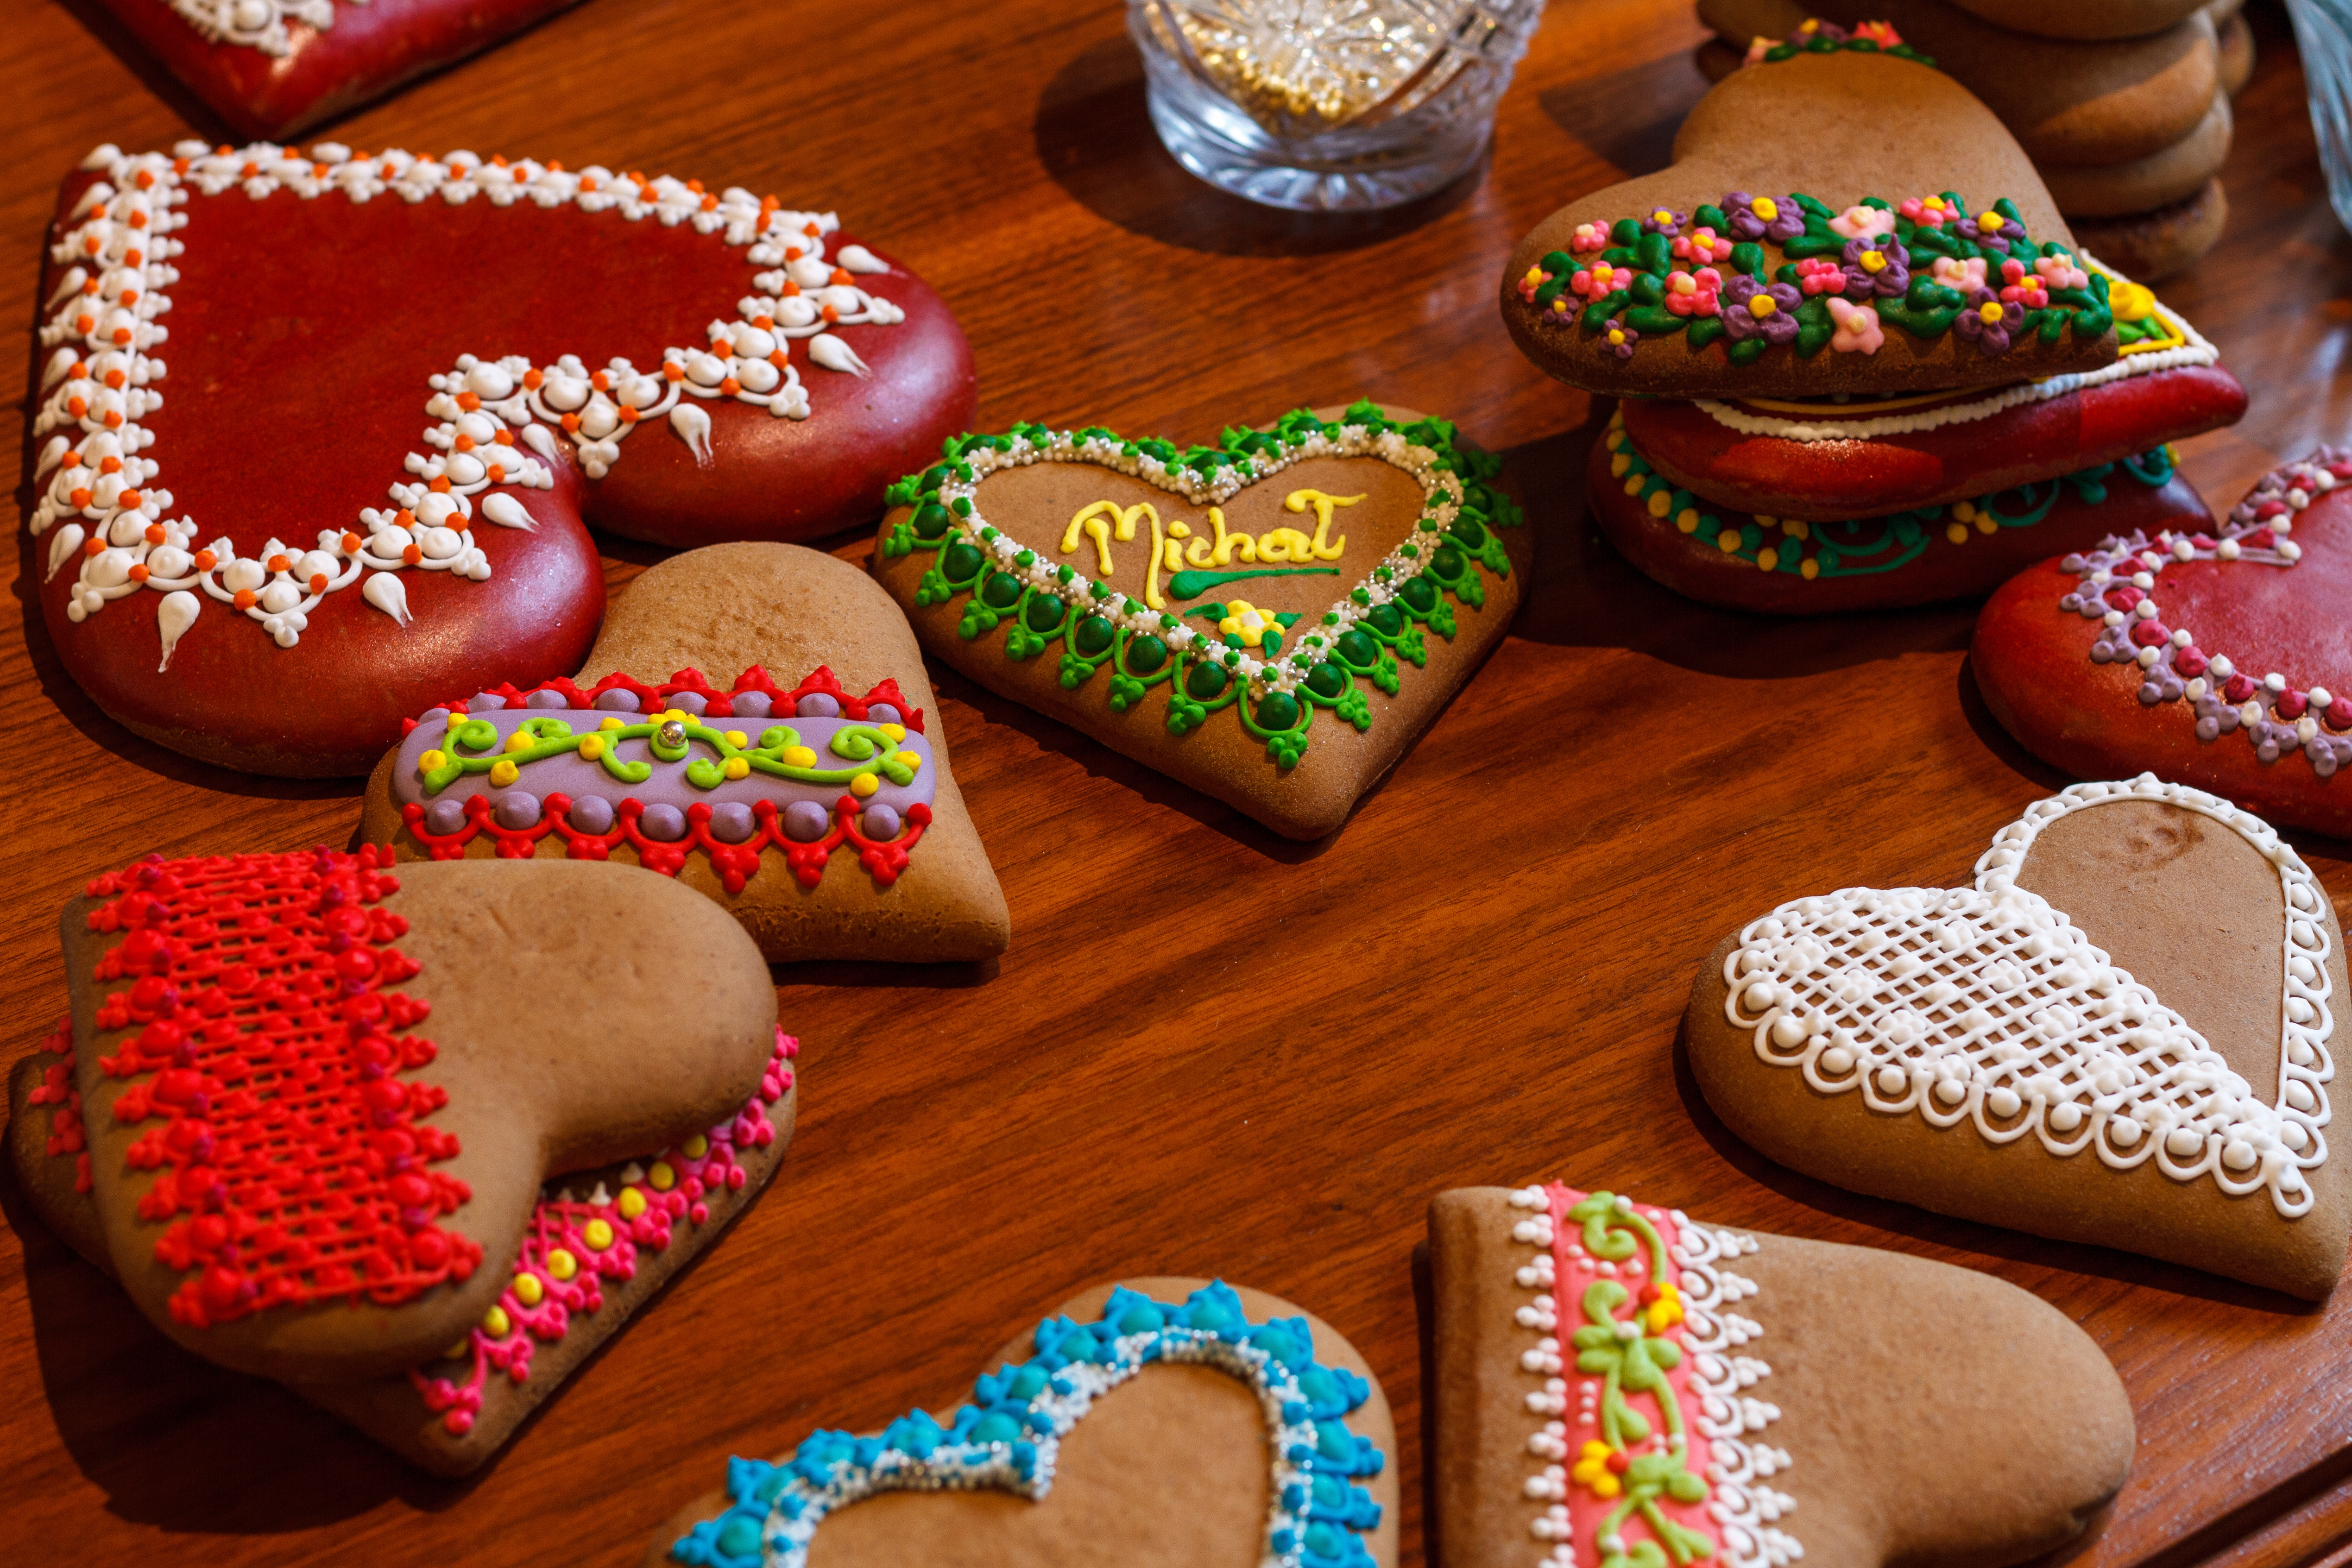 Heart Shaped Cookies, Art, Food, Traditional, Tasty, HQ Photo